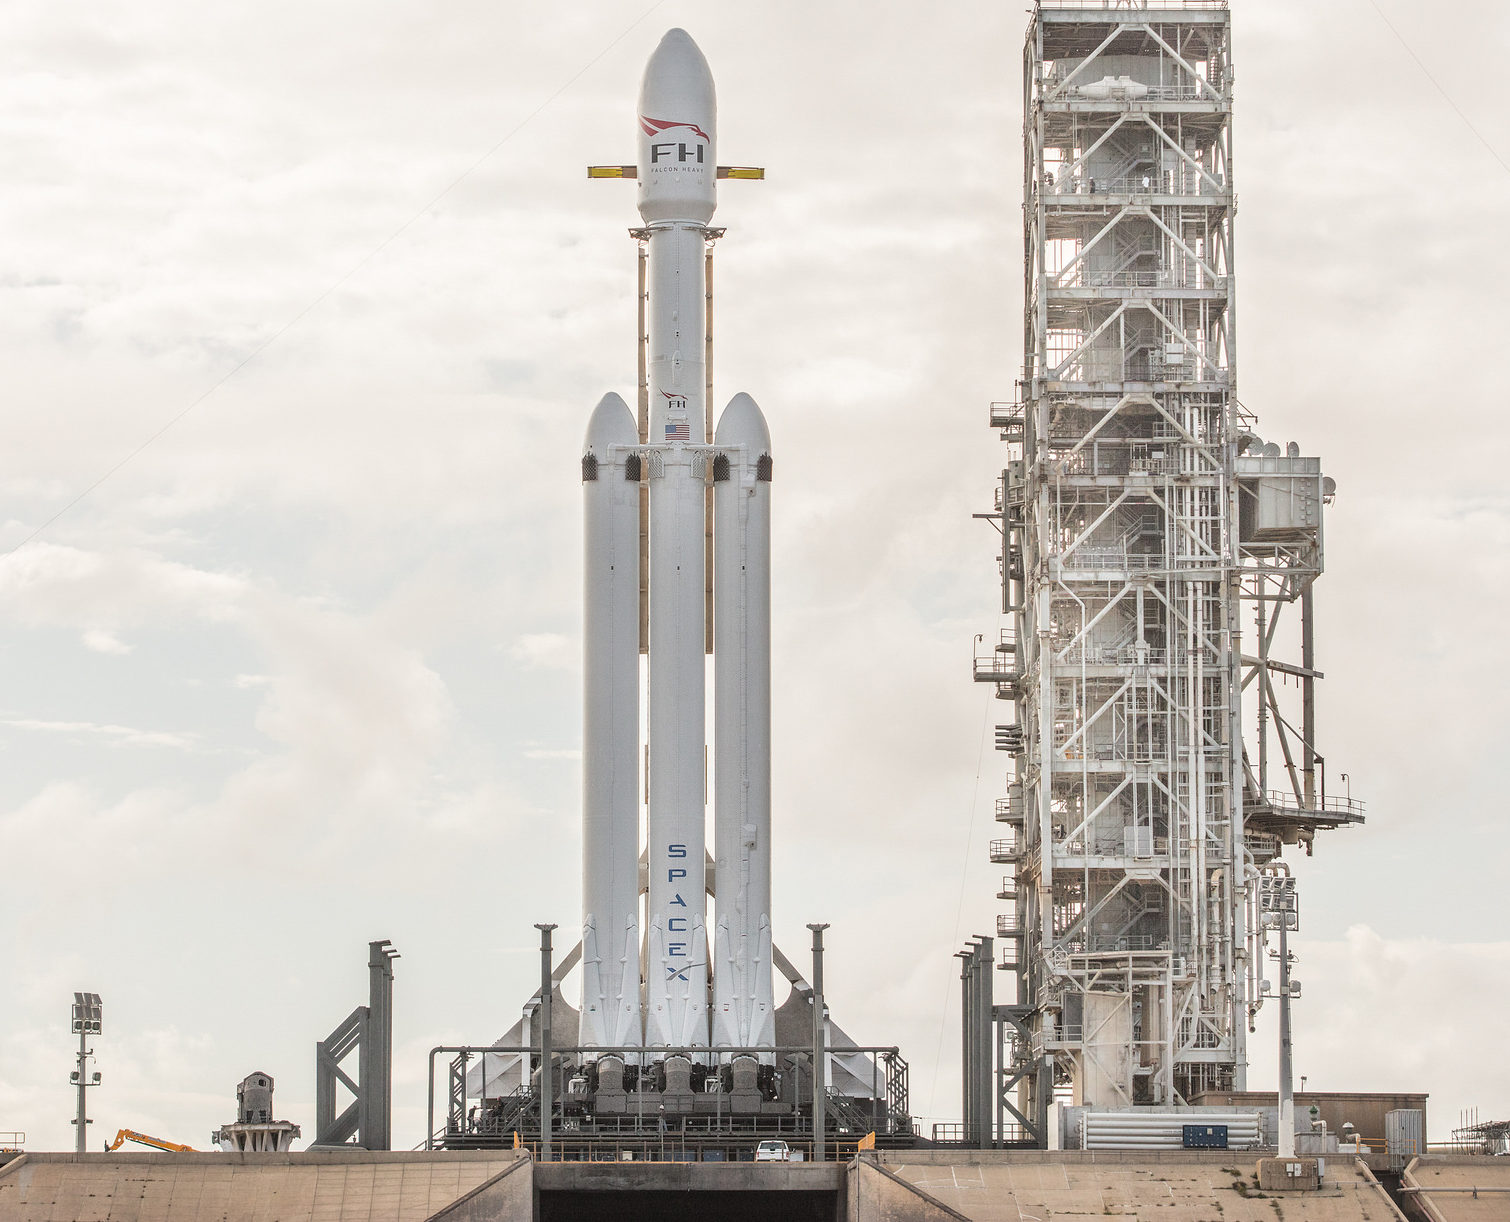 spacex-falcon-heavy-vertical-kennedy-space-center